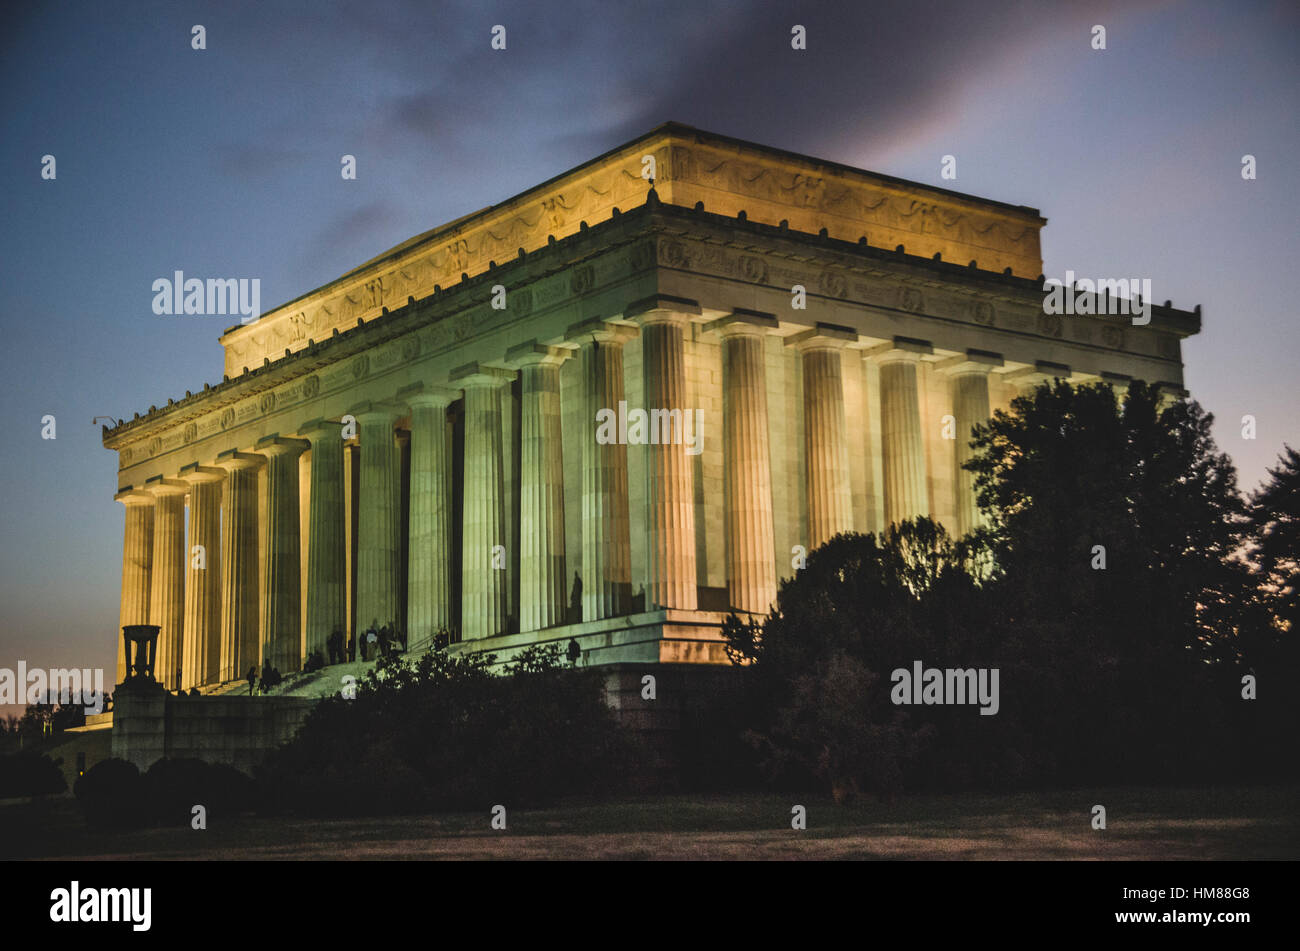 Lincoln Memorial Protections Extérieures au crépuscule, Washington, DC, USA Photo Stock